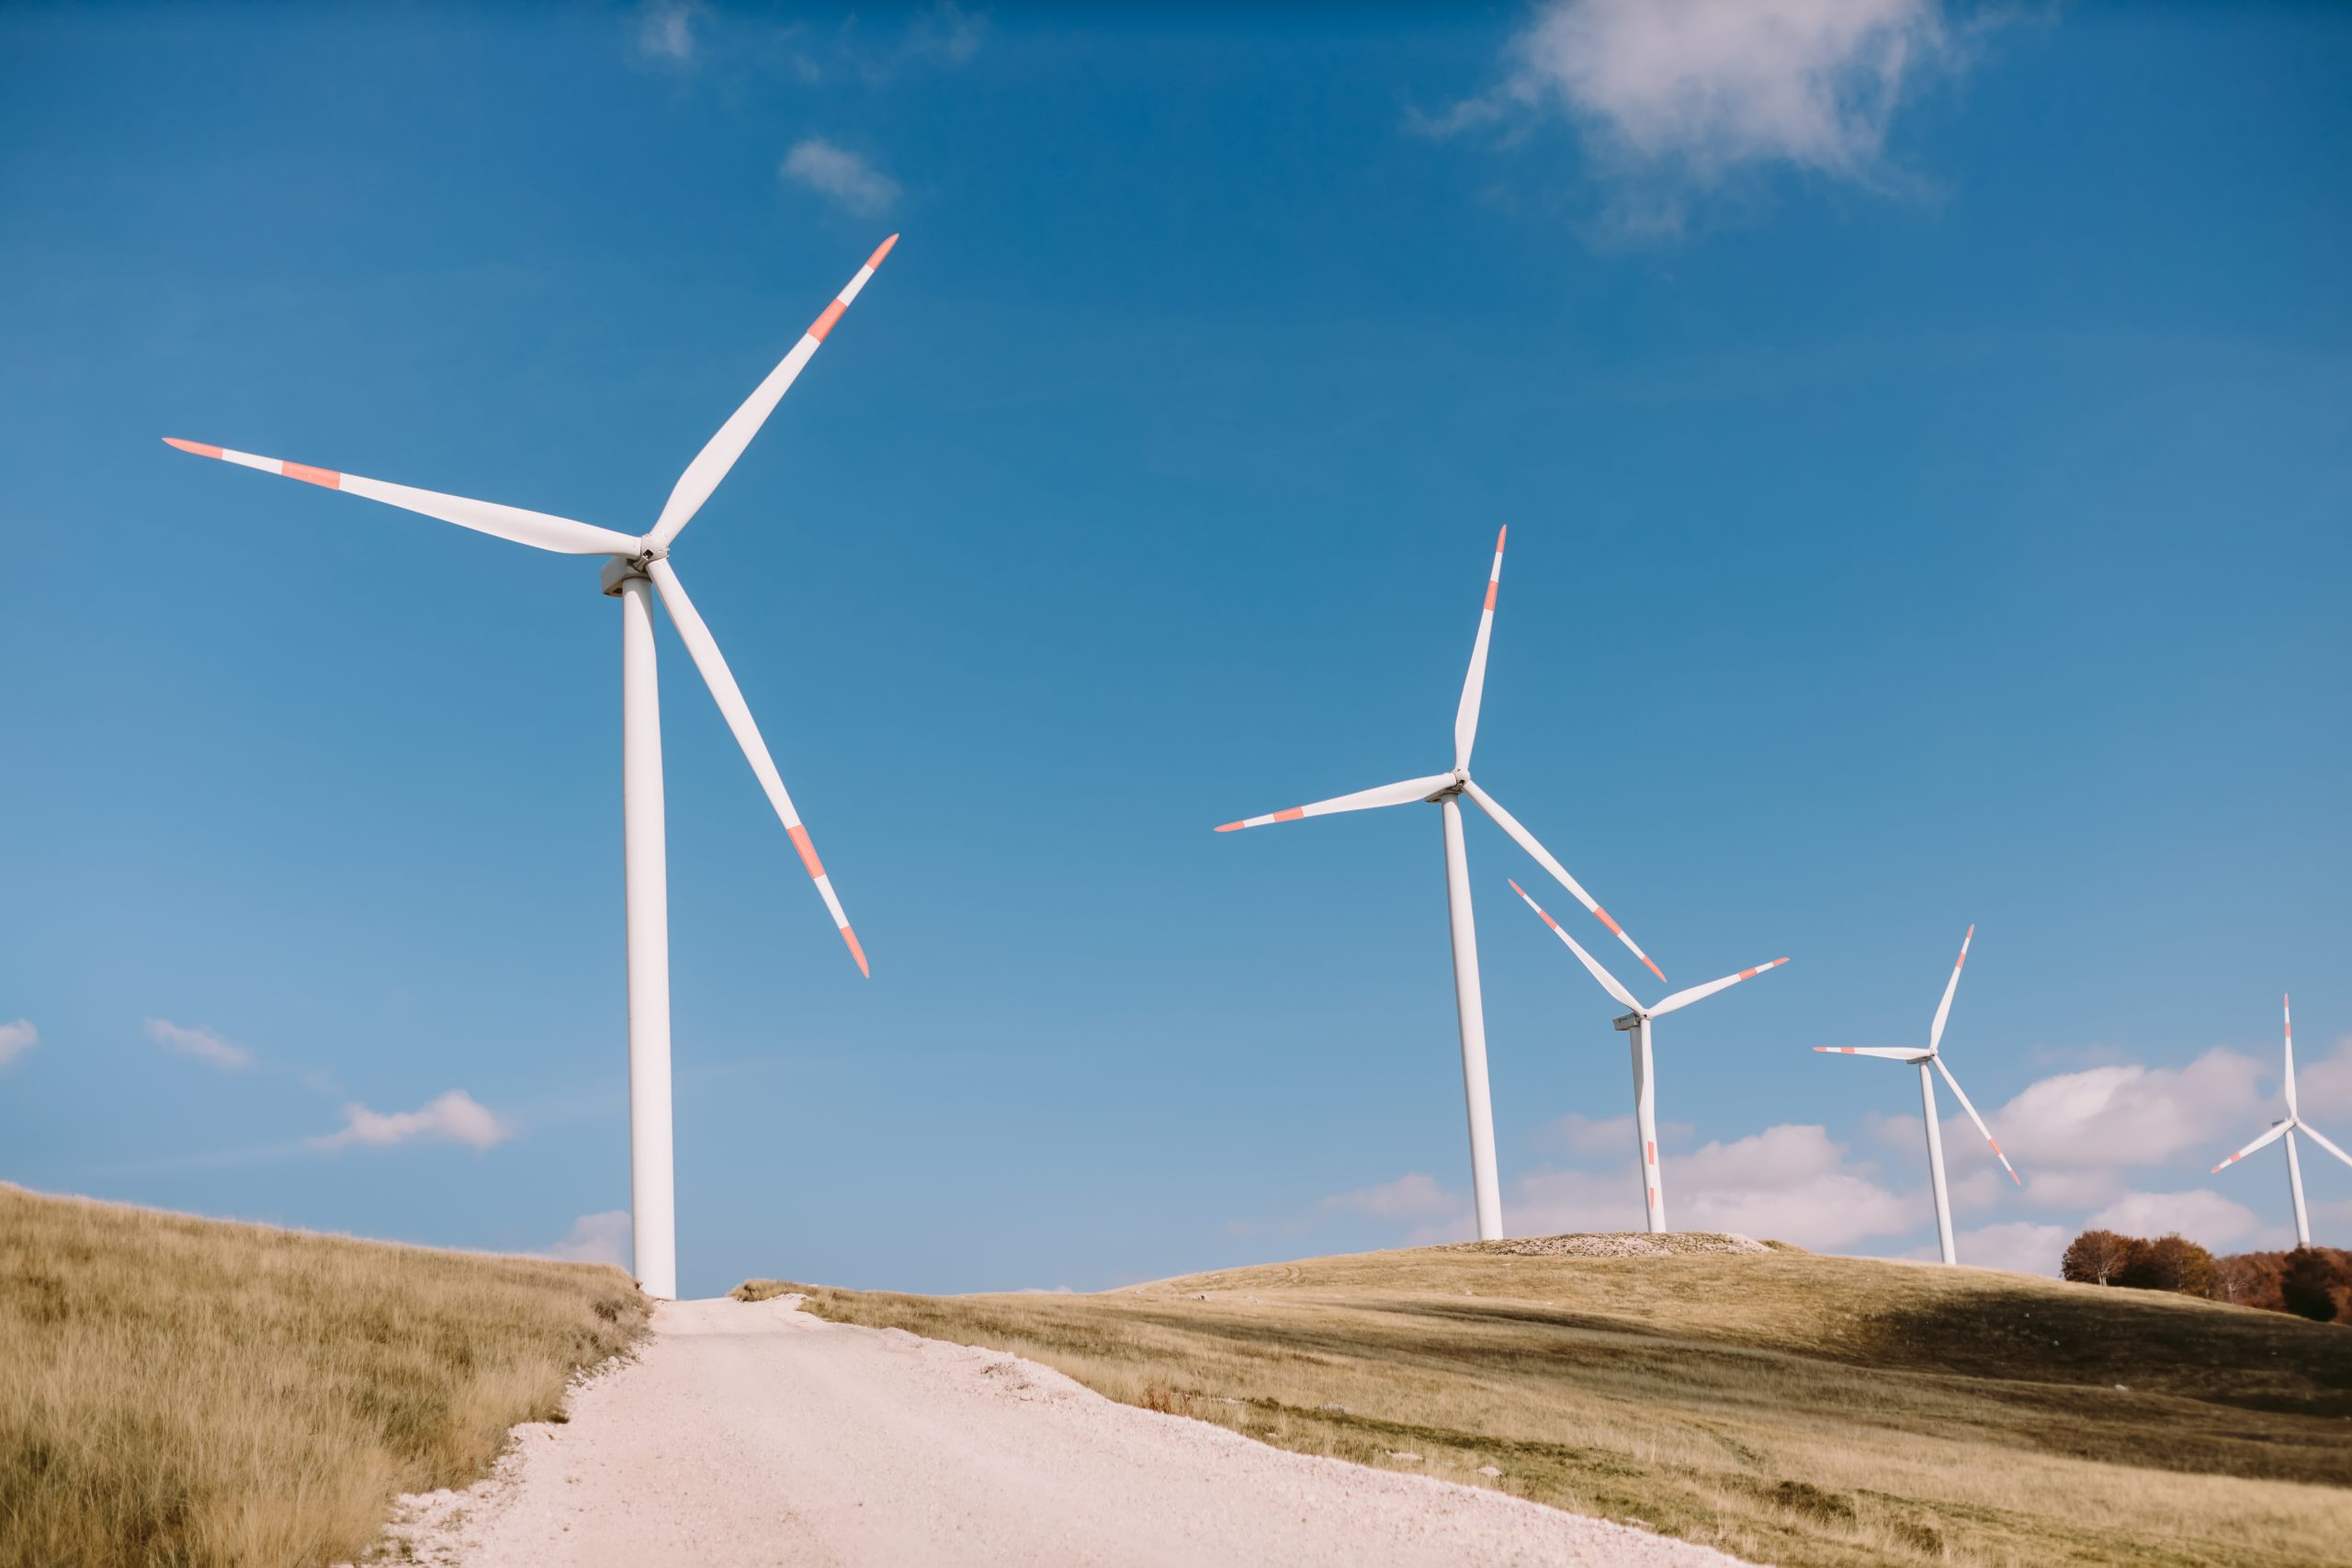 wind turbine farm. Wind power station with a group of wind turbines onshore in a beautiful scenery.